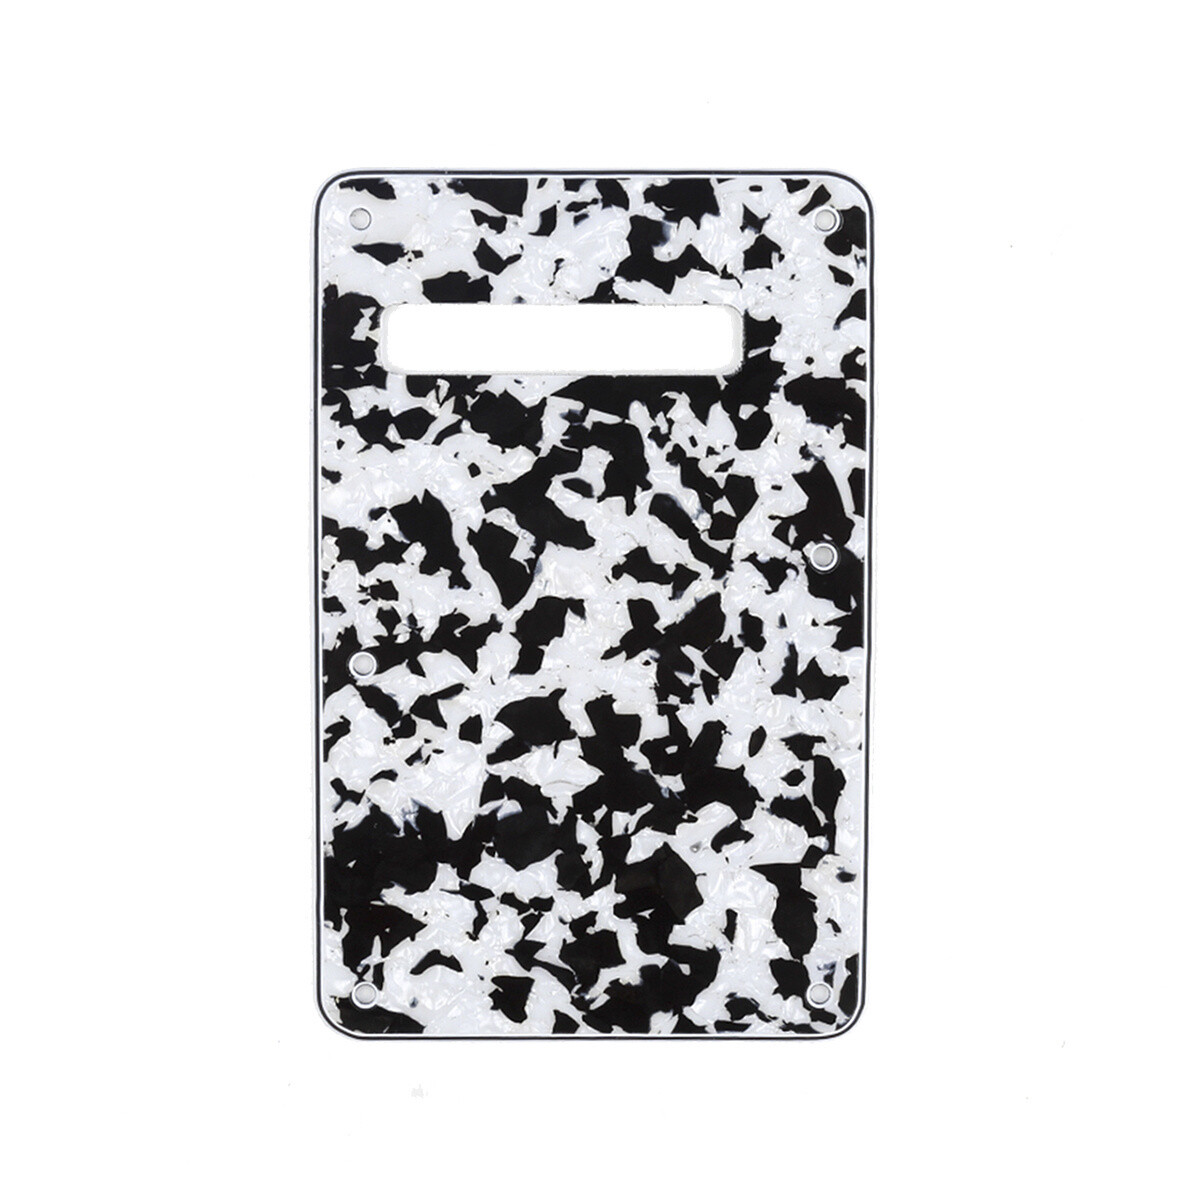 Brio Agate Black Modern Style Back Plate Tremolo Cover 4 ply - US/Mexican Fender®Strat® Fit